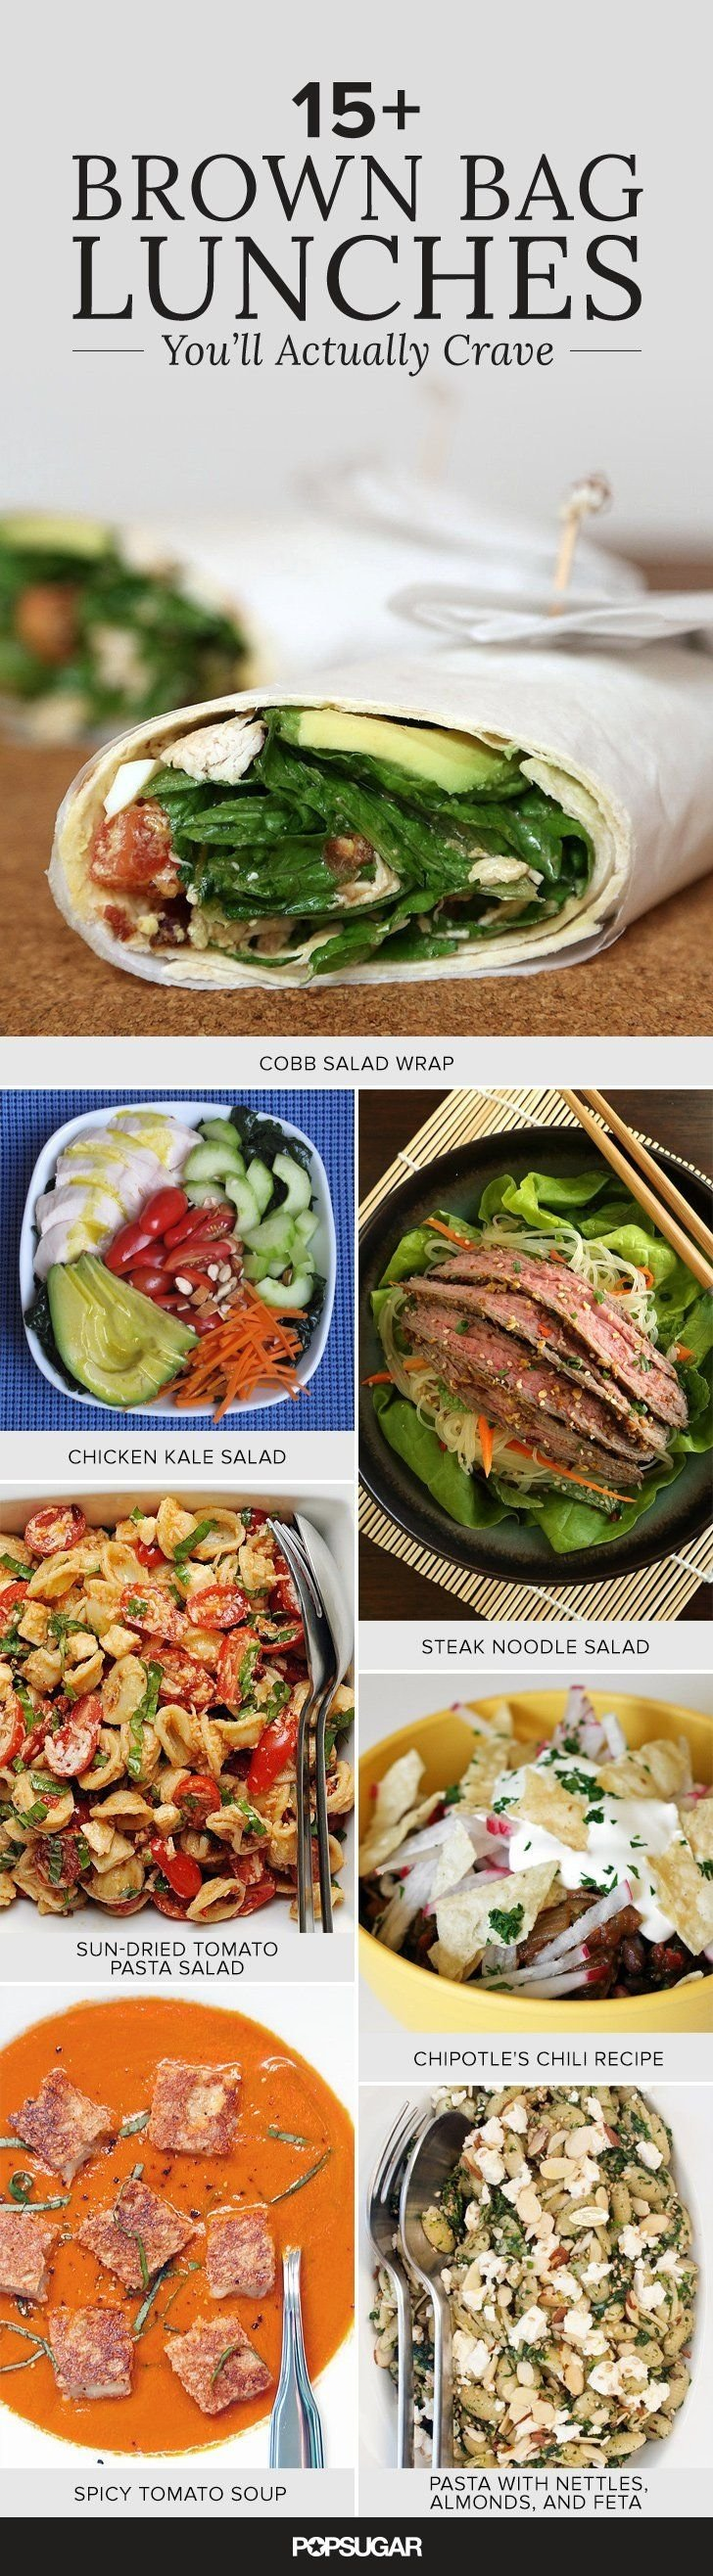 40+ good-looking lunches to bring to work | brown bags, lunches and